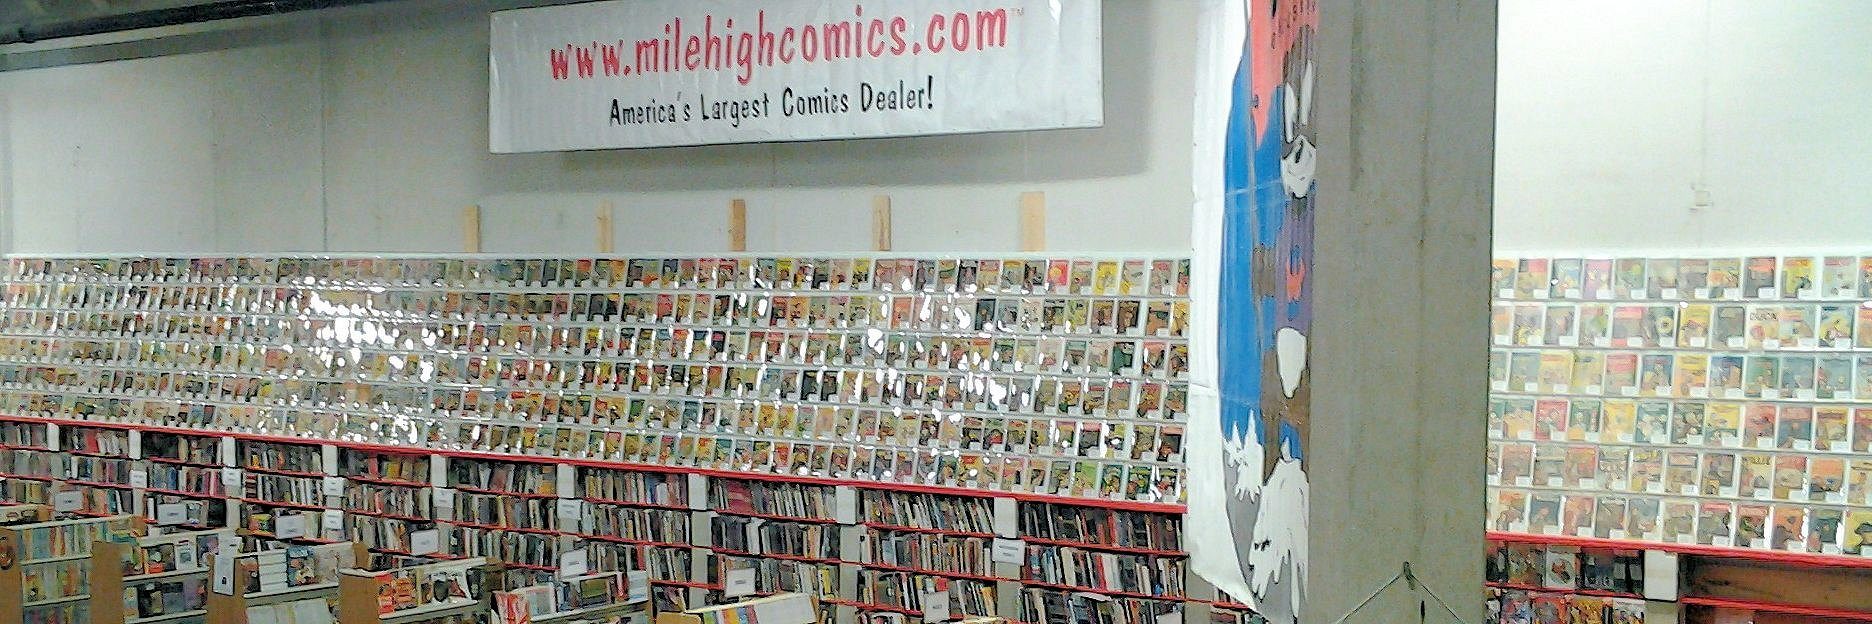 Jason St Comics Wall